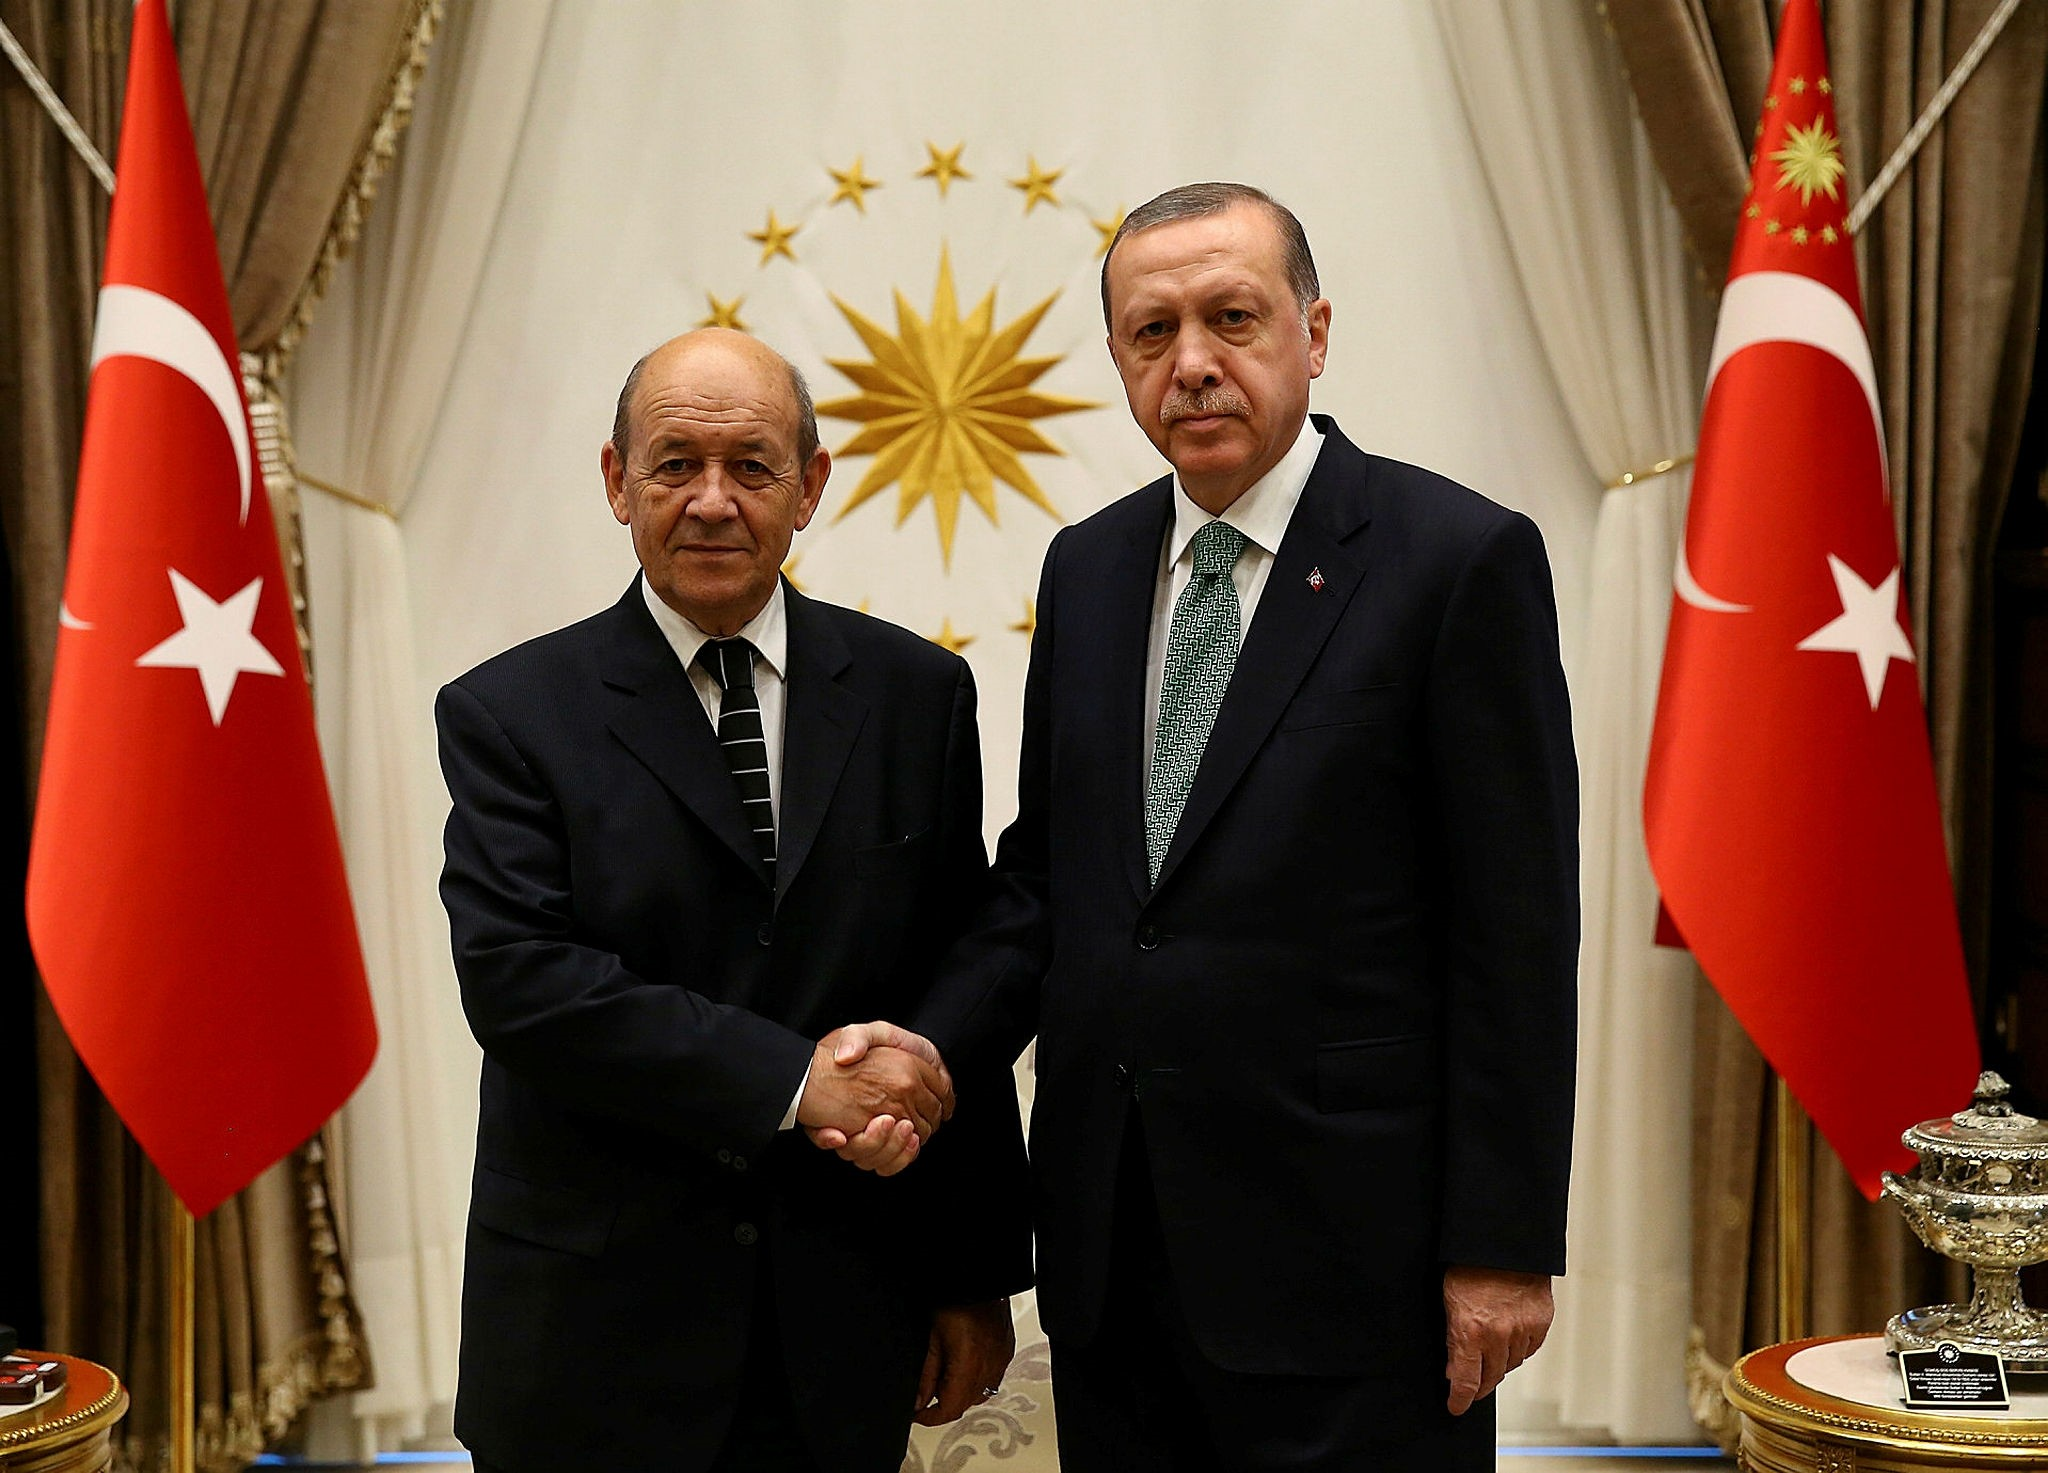 Le Drian (L) and Erdou011fan shake hands in Beu015ftepe Presidential Complex (Reuters Photo)